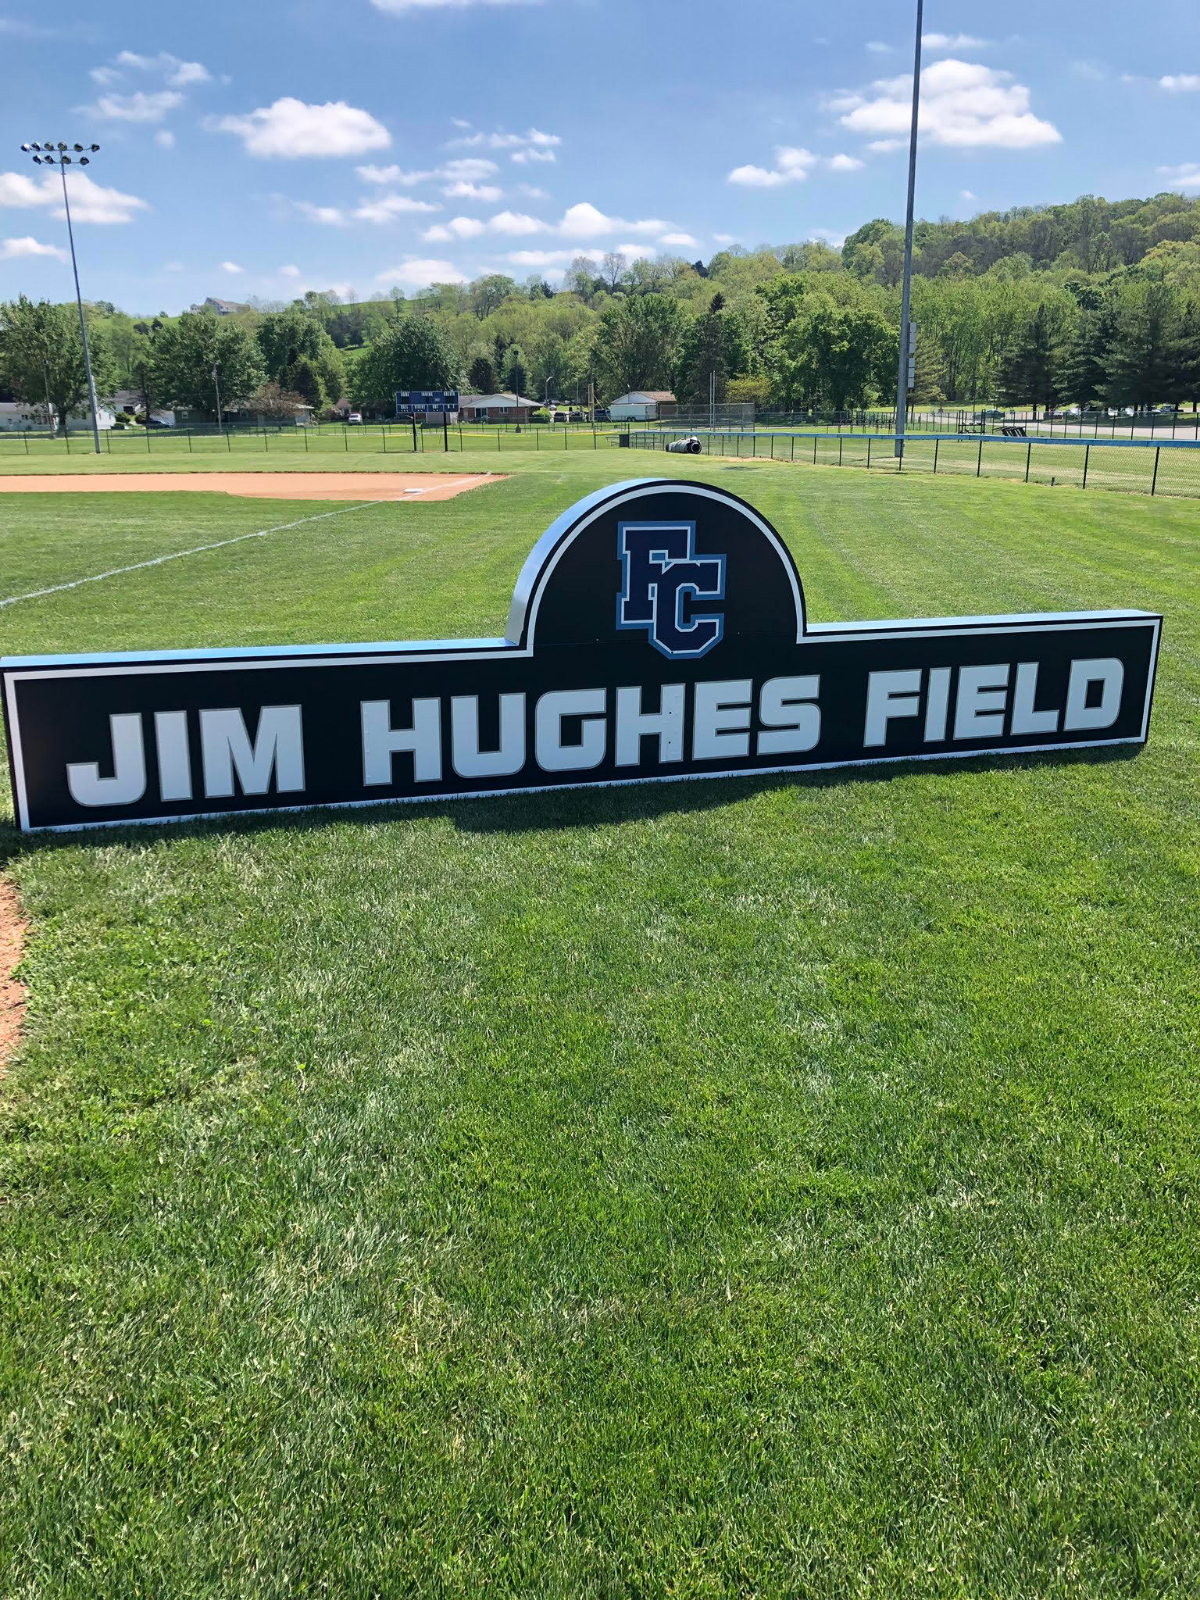 Purchase Brick Paver for Jim Hughes Field